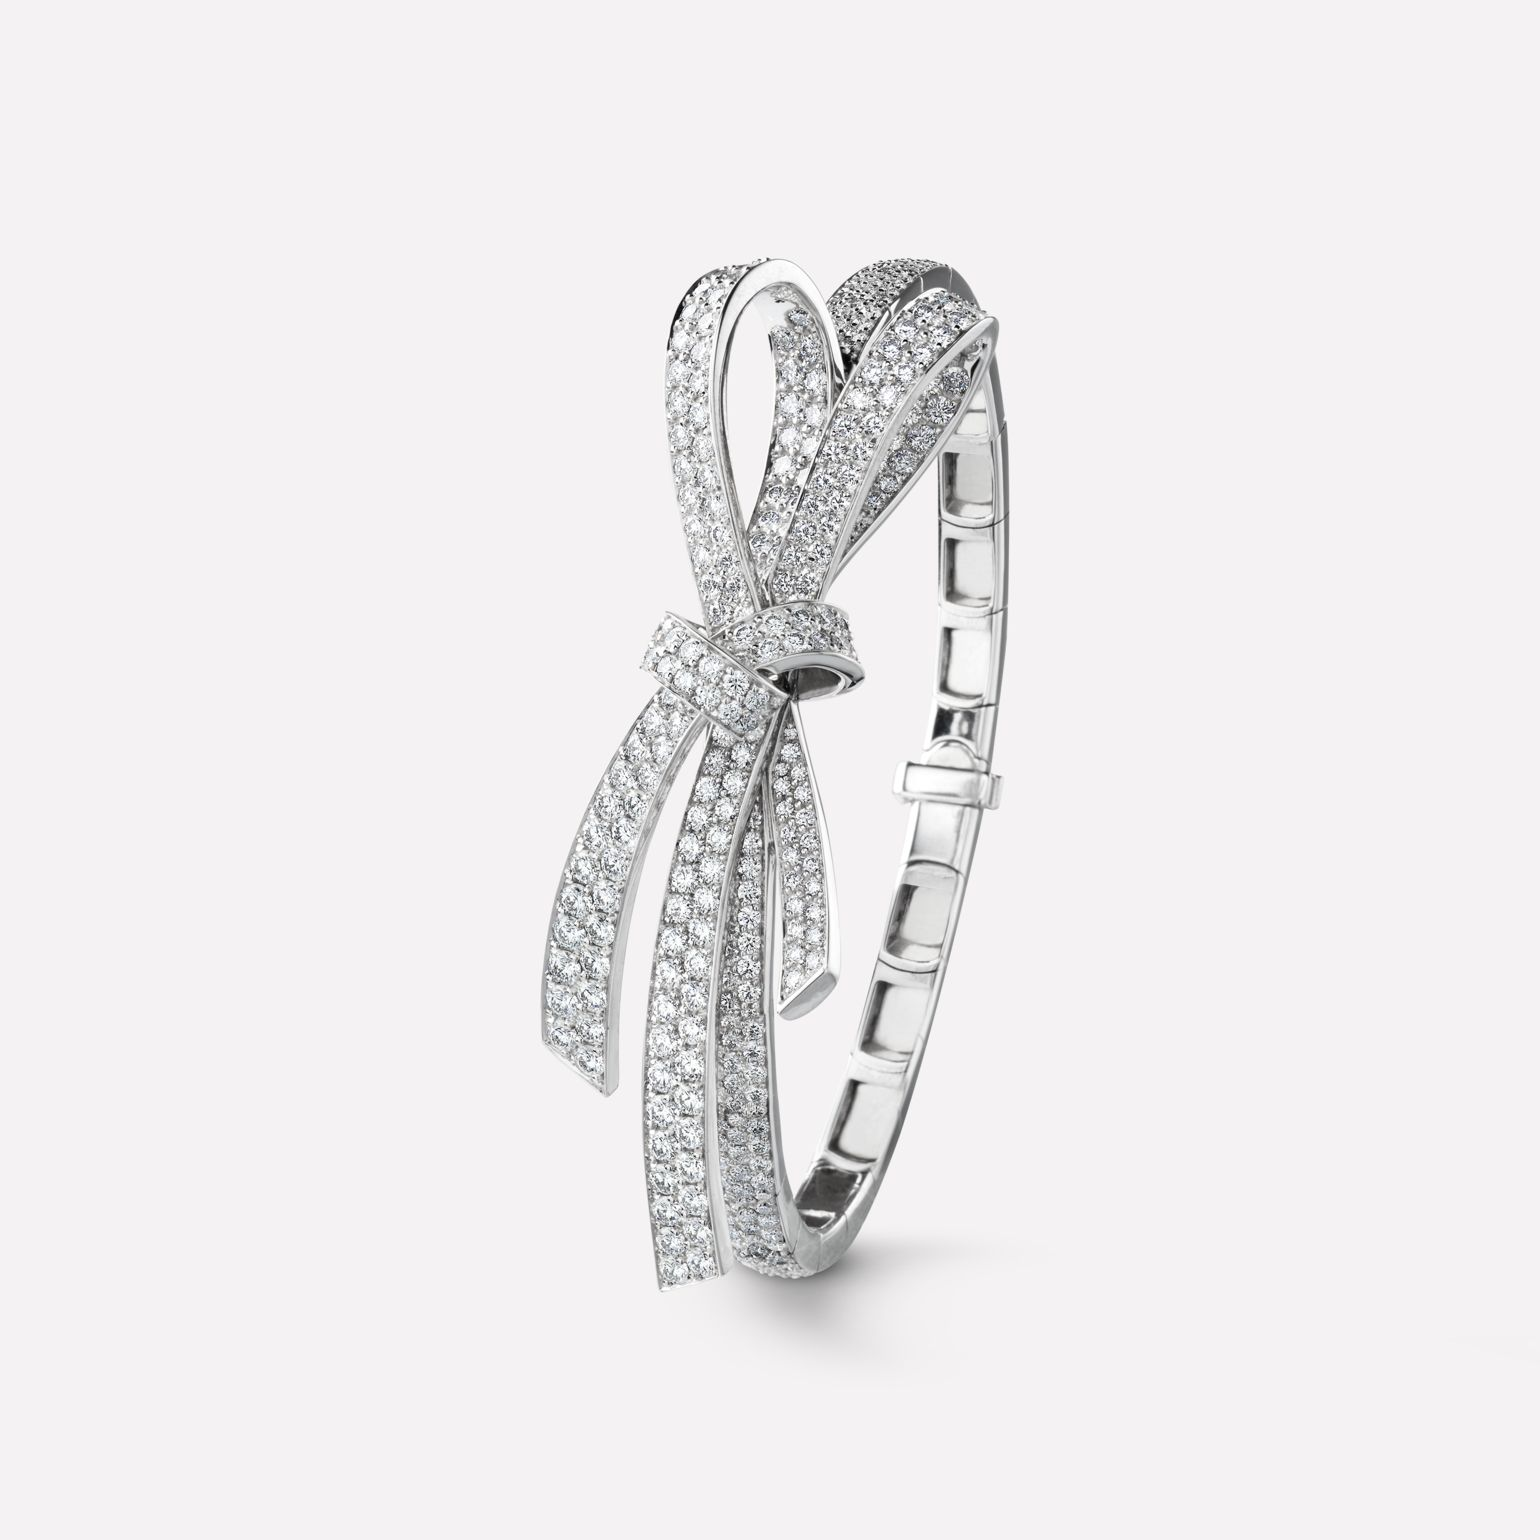 Ruban Ring Ruban bracelet in 18K white gold and diamonds